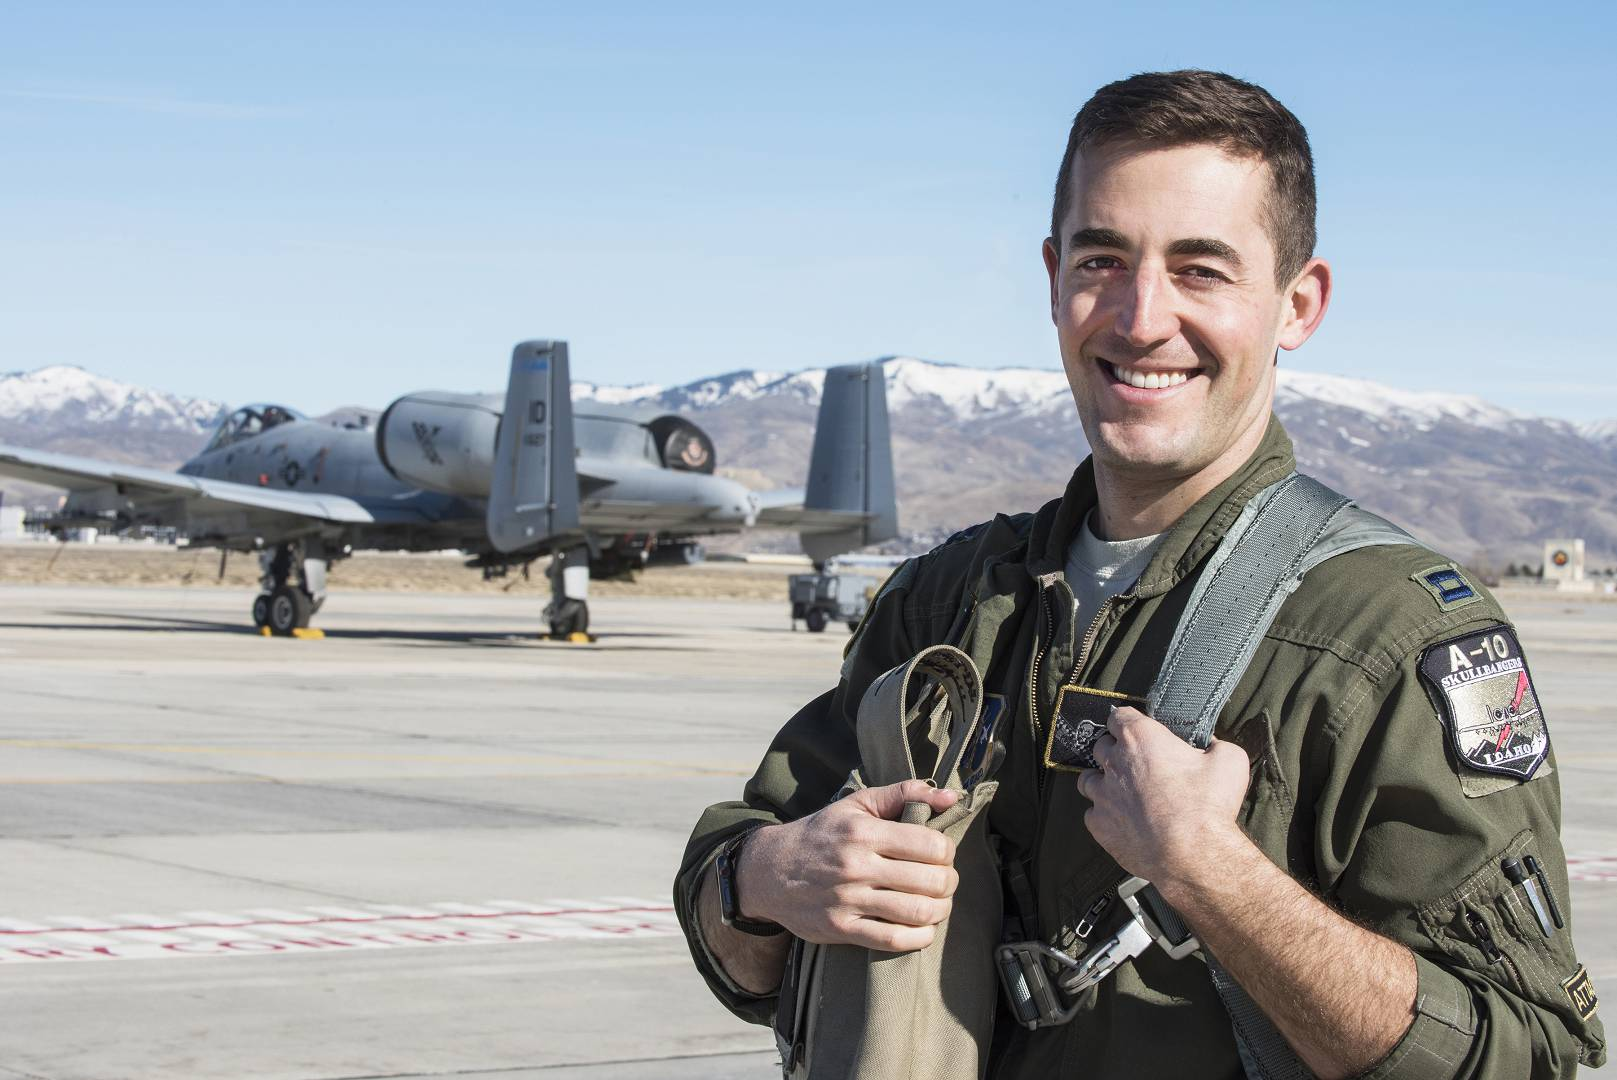 Spend a day flying with Capt. Mike Shufeldt, one of the Idaho National Guard's A-10 Thunderbolt II pilots, and feel firsthand what it is like to be an A-10 fighter pilot. Photo by Master Sgt. Becky Vanshur